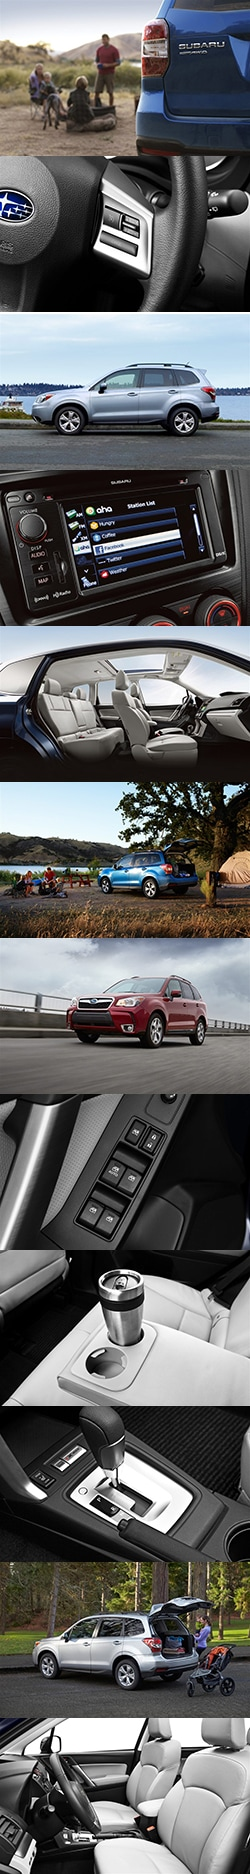 2015 Subaru Forester Deals at Garcia Subaru | Albuquerque